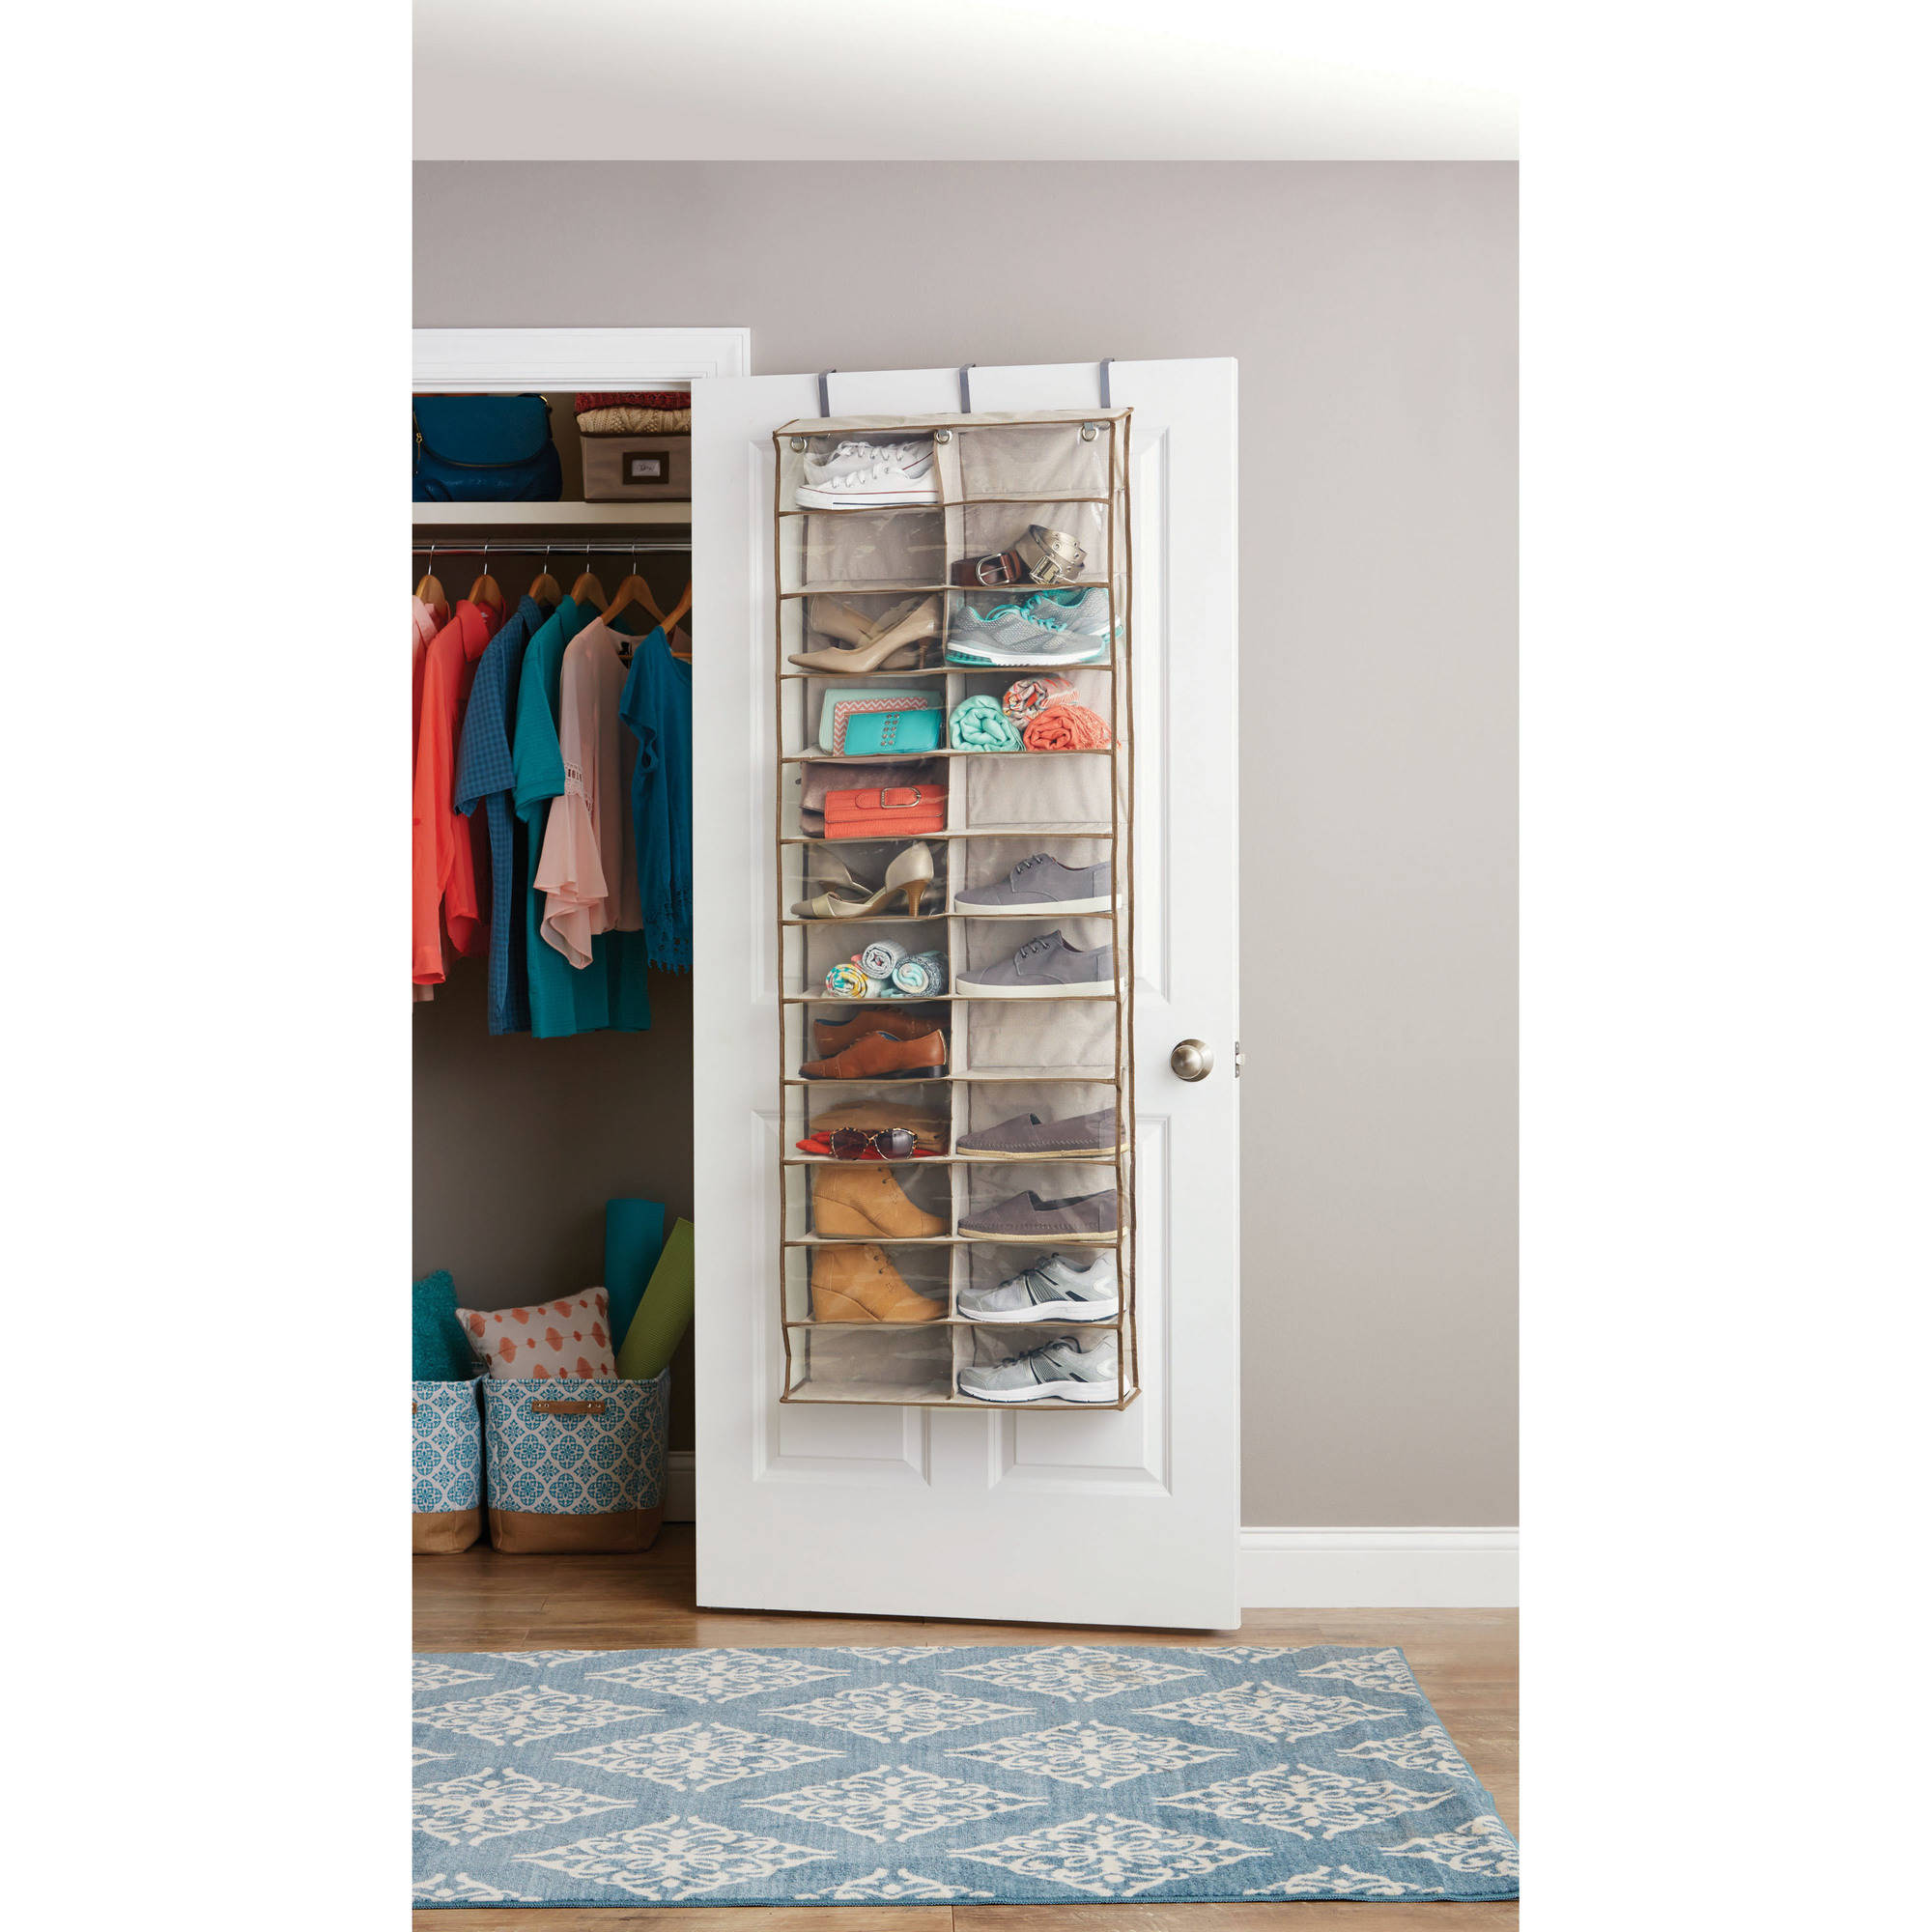 Better Homes and Gardens Over-the-Door Shoe Organizer